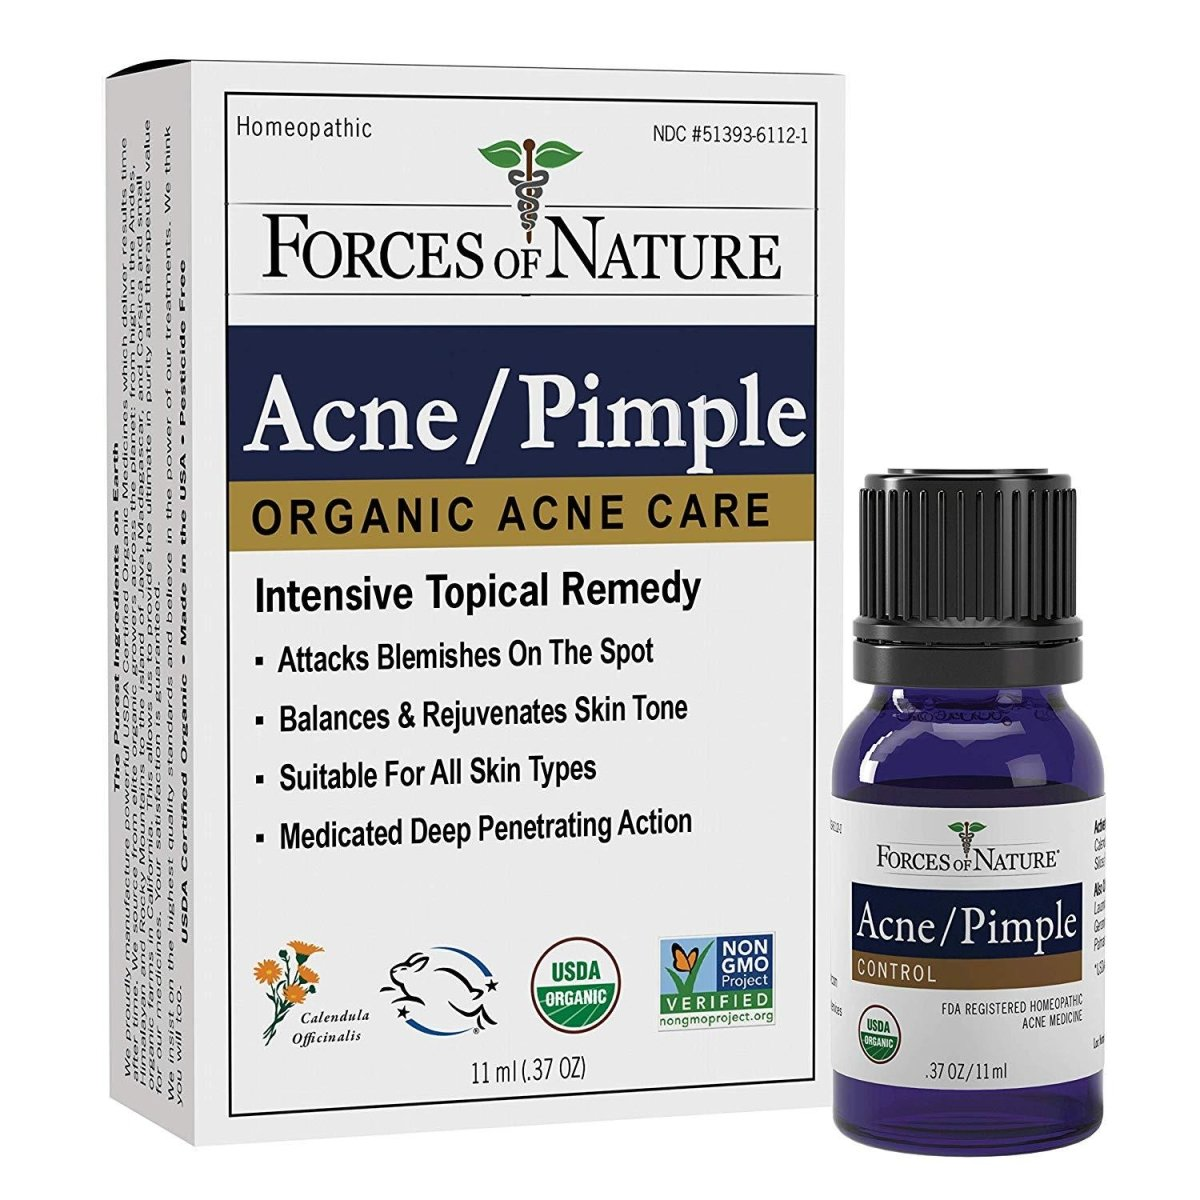 4 ml Acne Pimple Control Roll-On